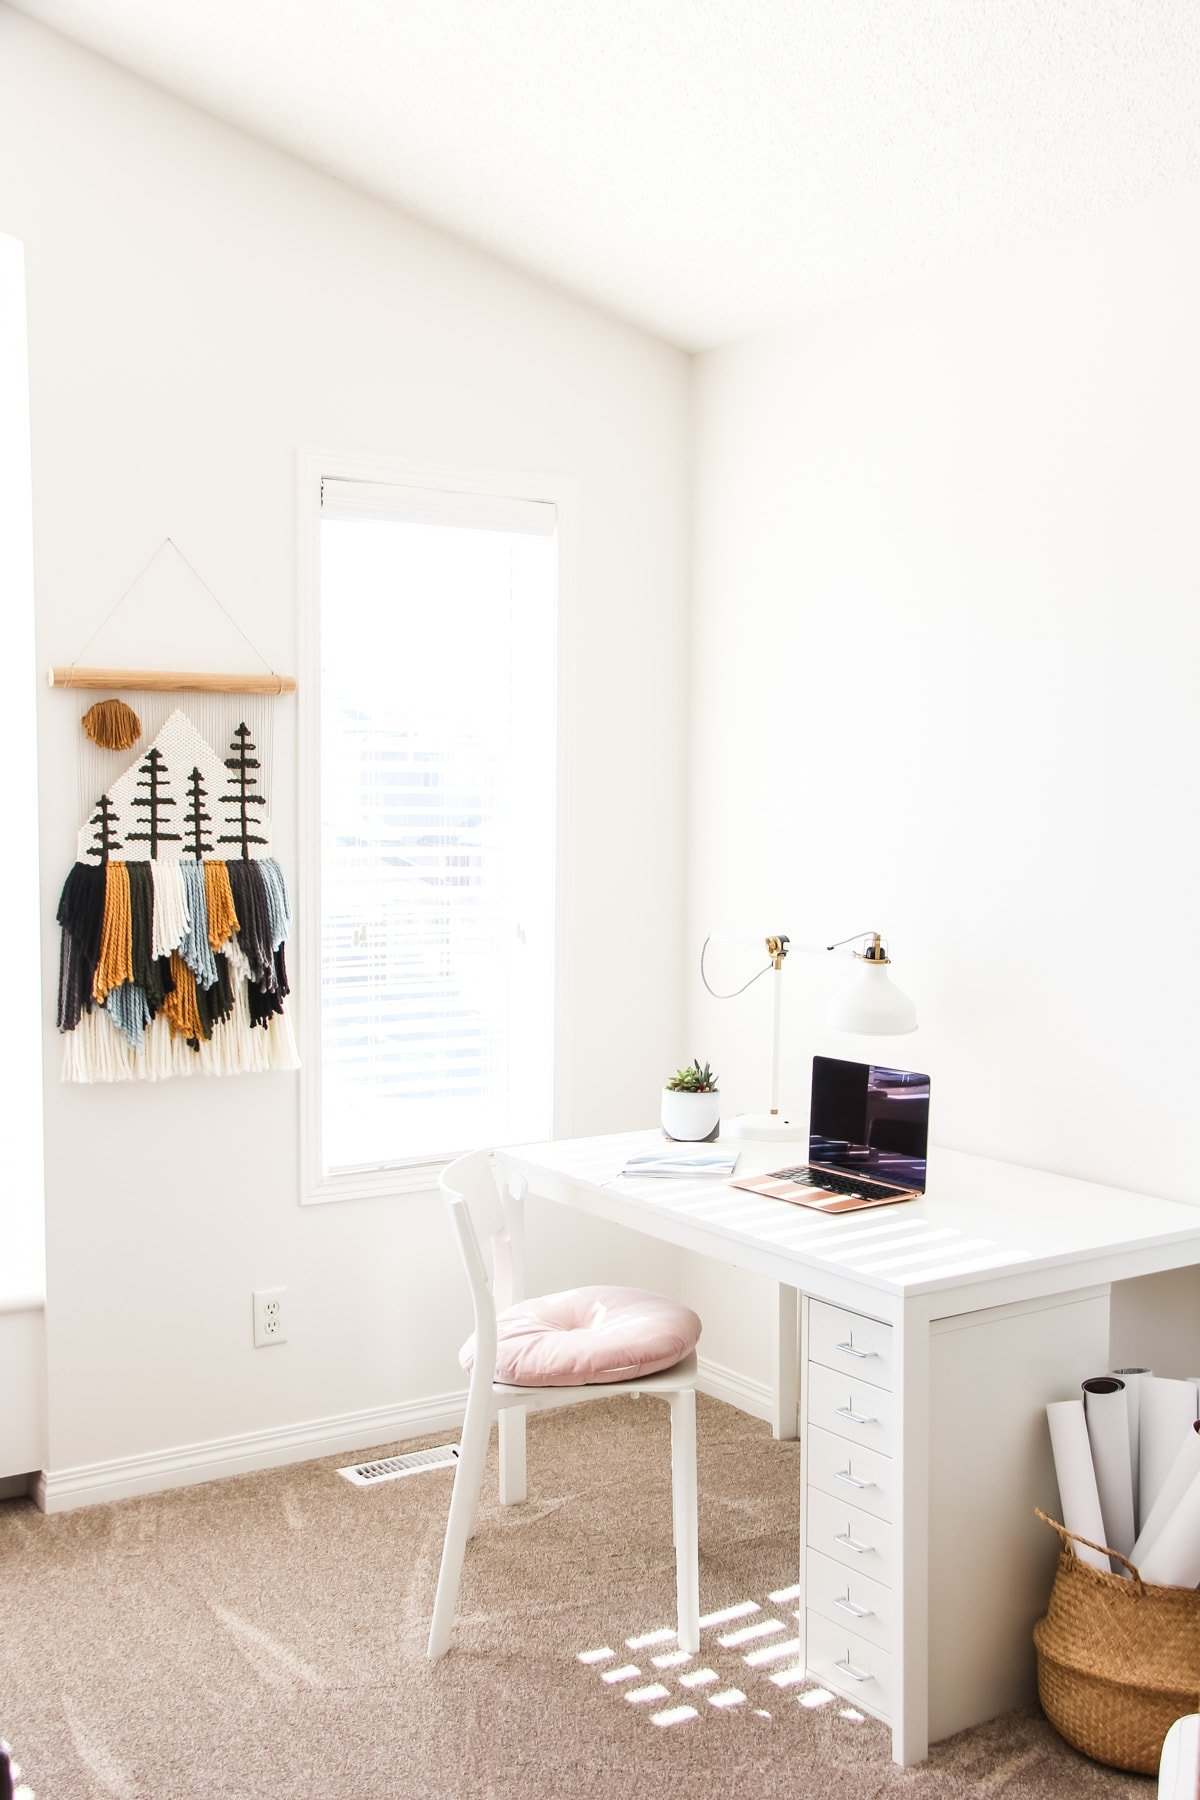 a small office space with a white desk, and white chair with a pink cushion. on the wall is a yarn wall hanging.